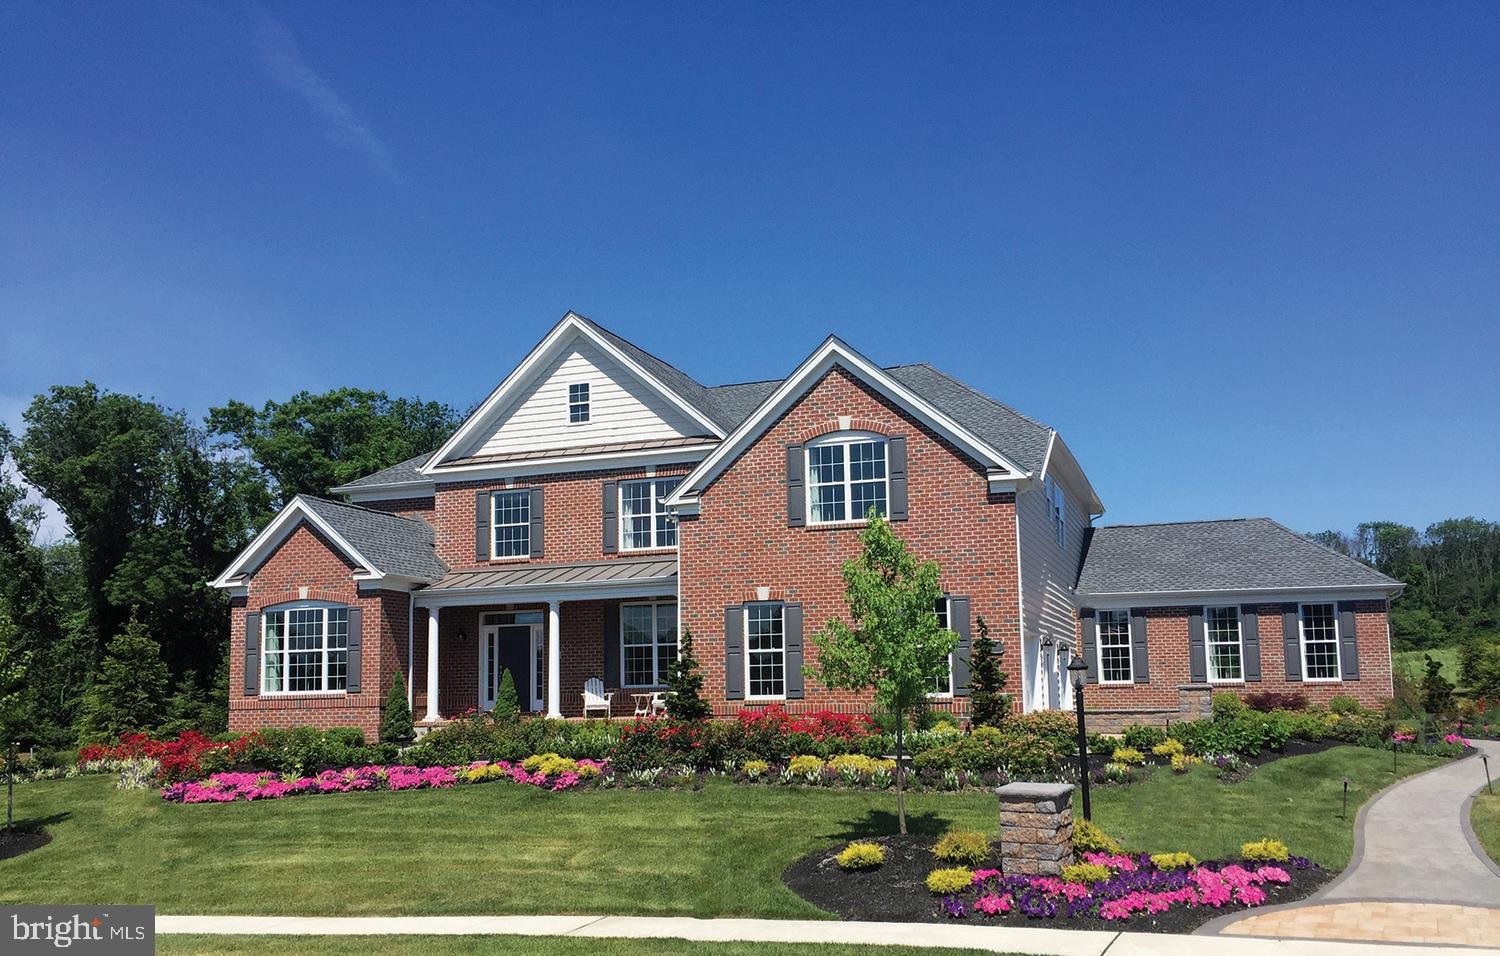 000 HAWTHORN DRIVE, EAGLEVILLE, PA 19403